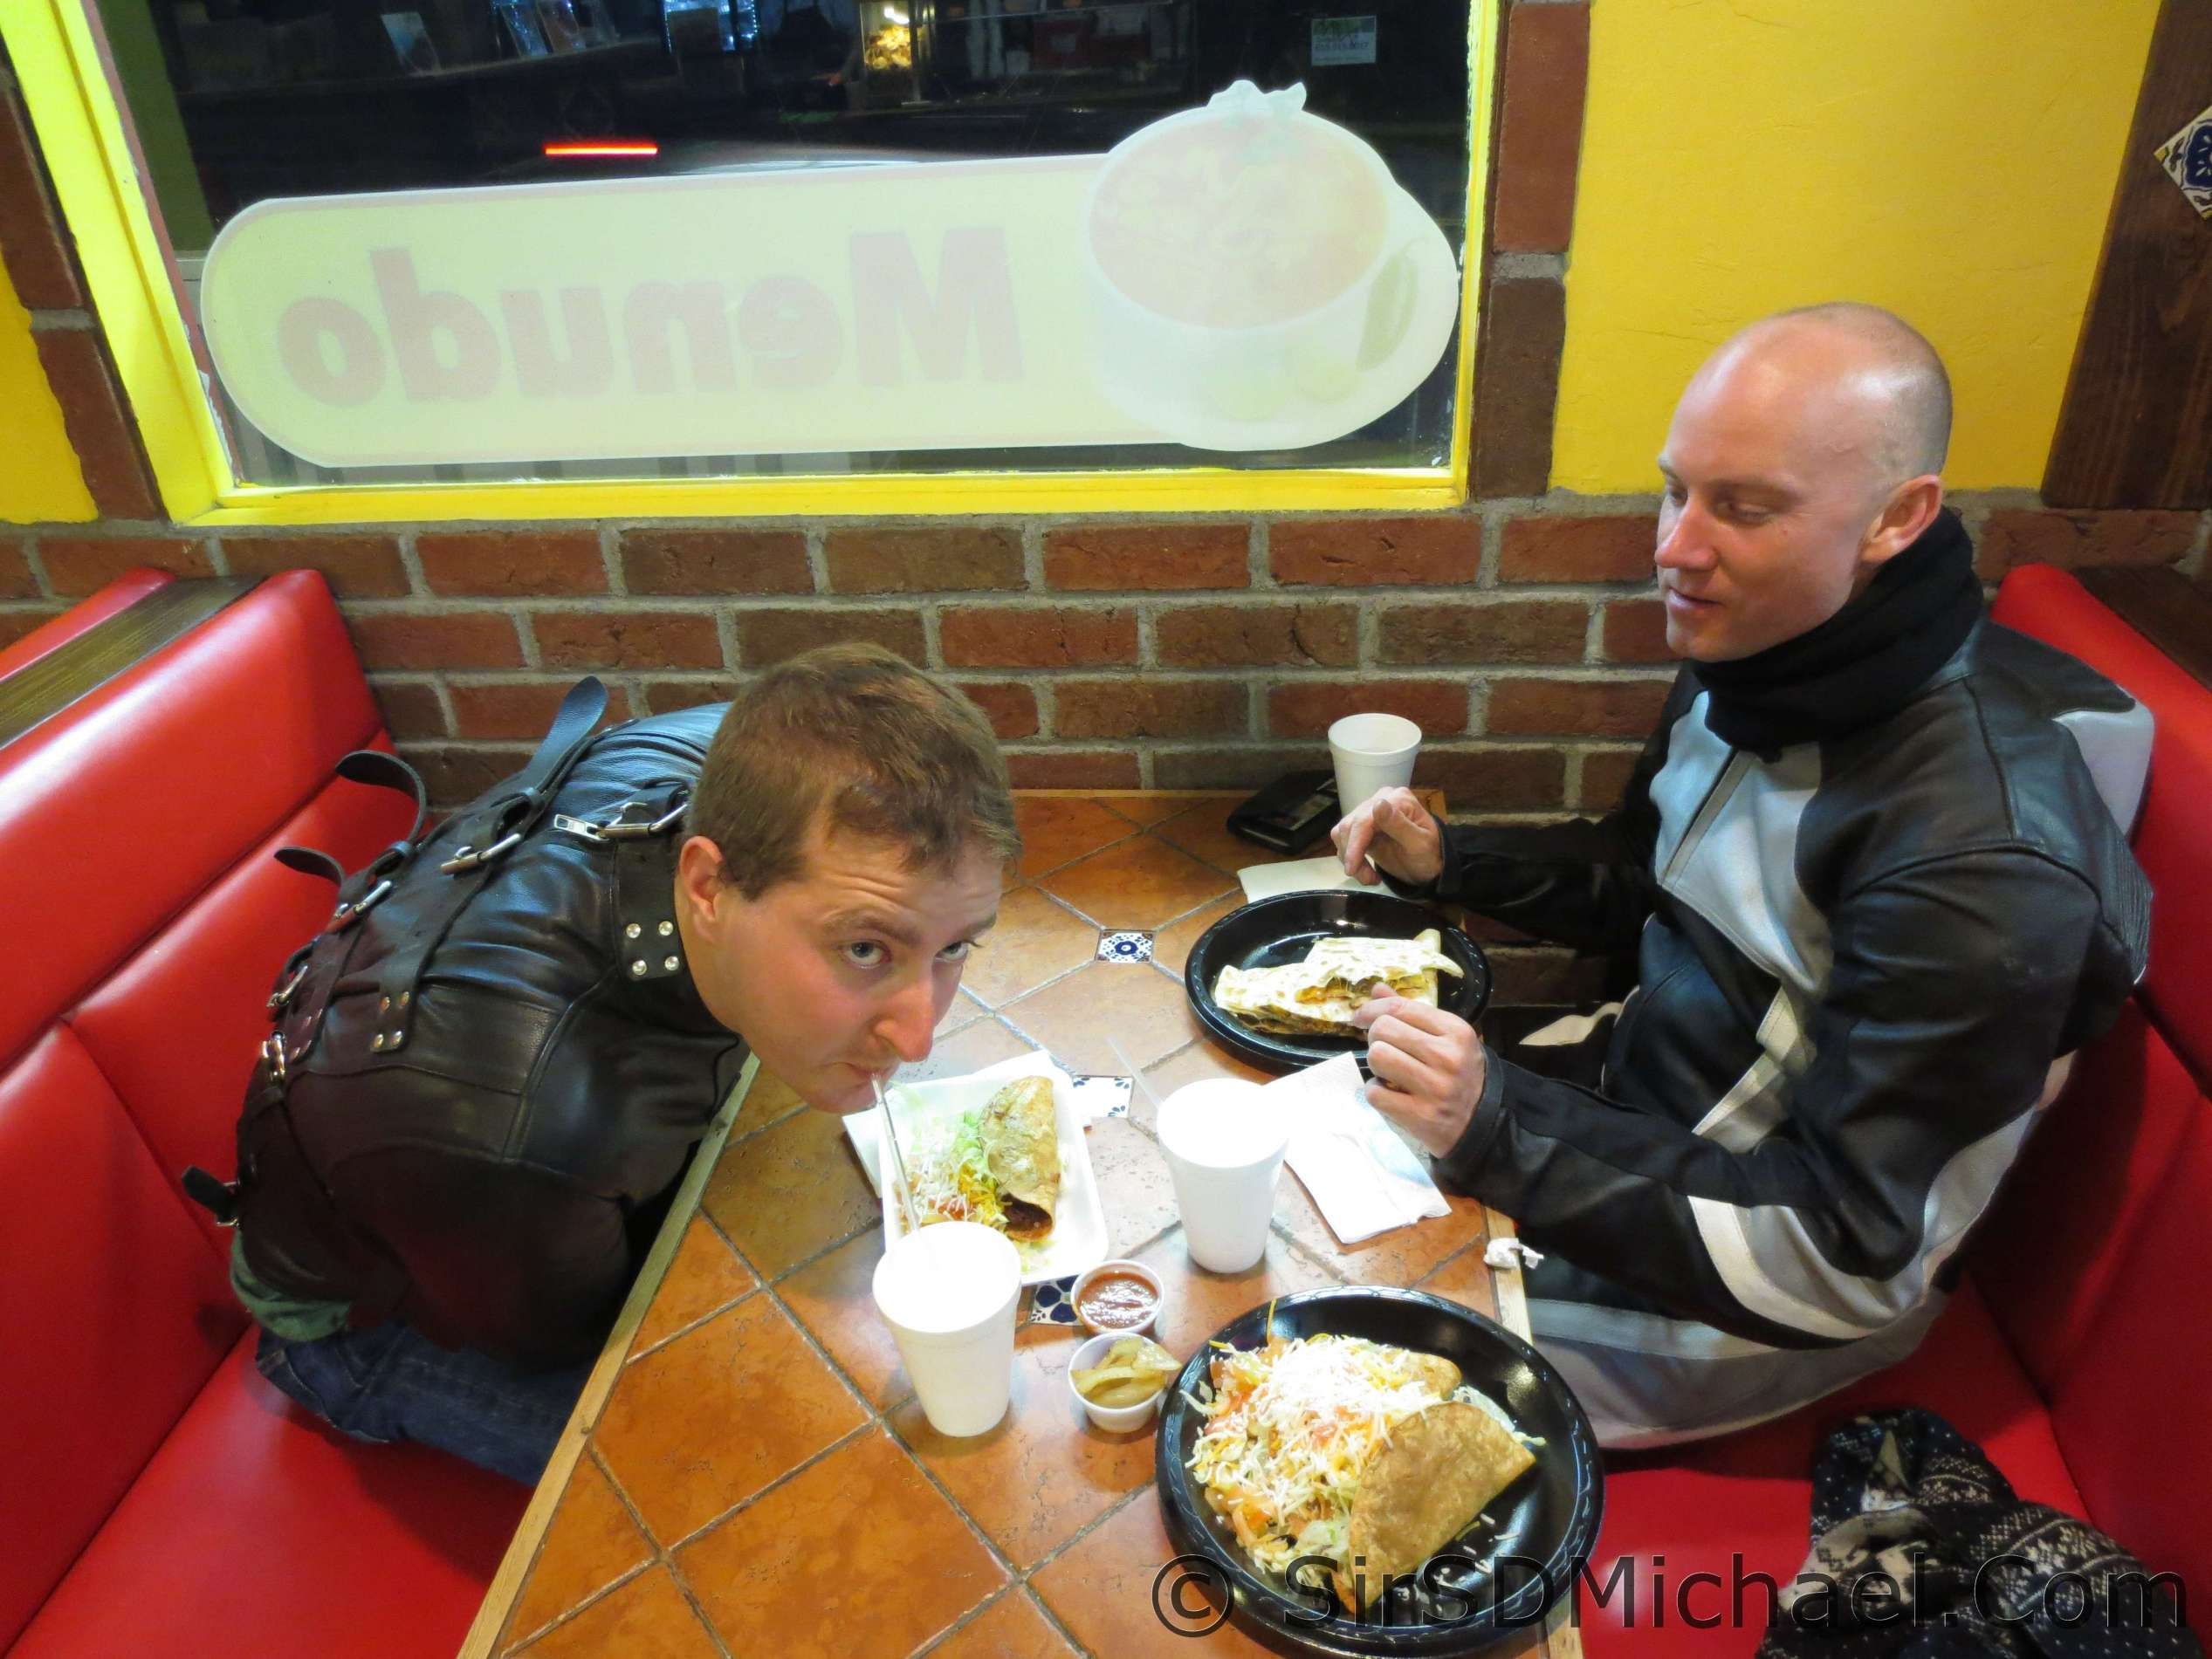 In leathers with a boy in a straitjacket having dinner.